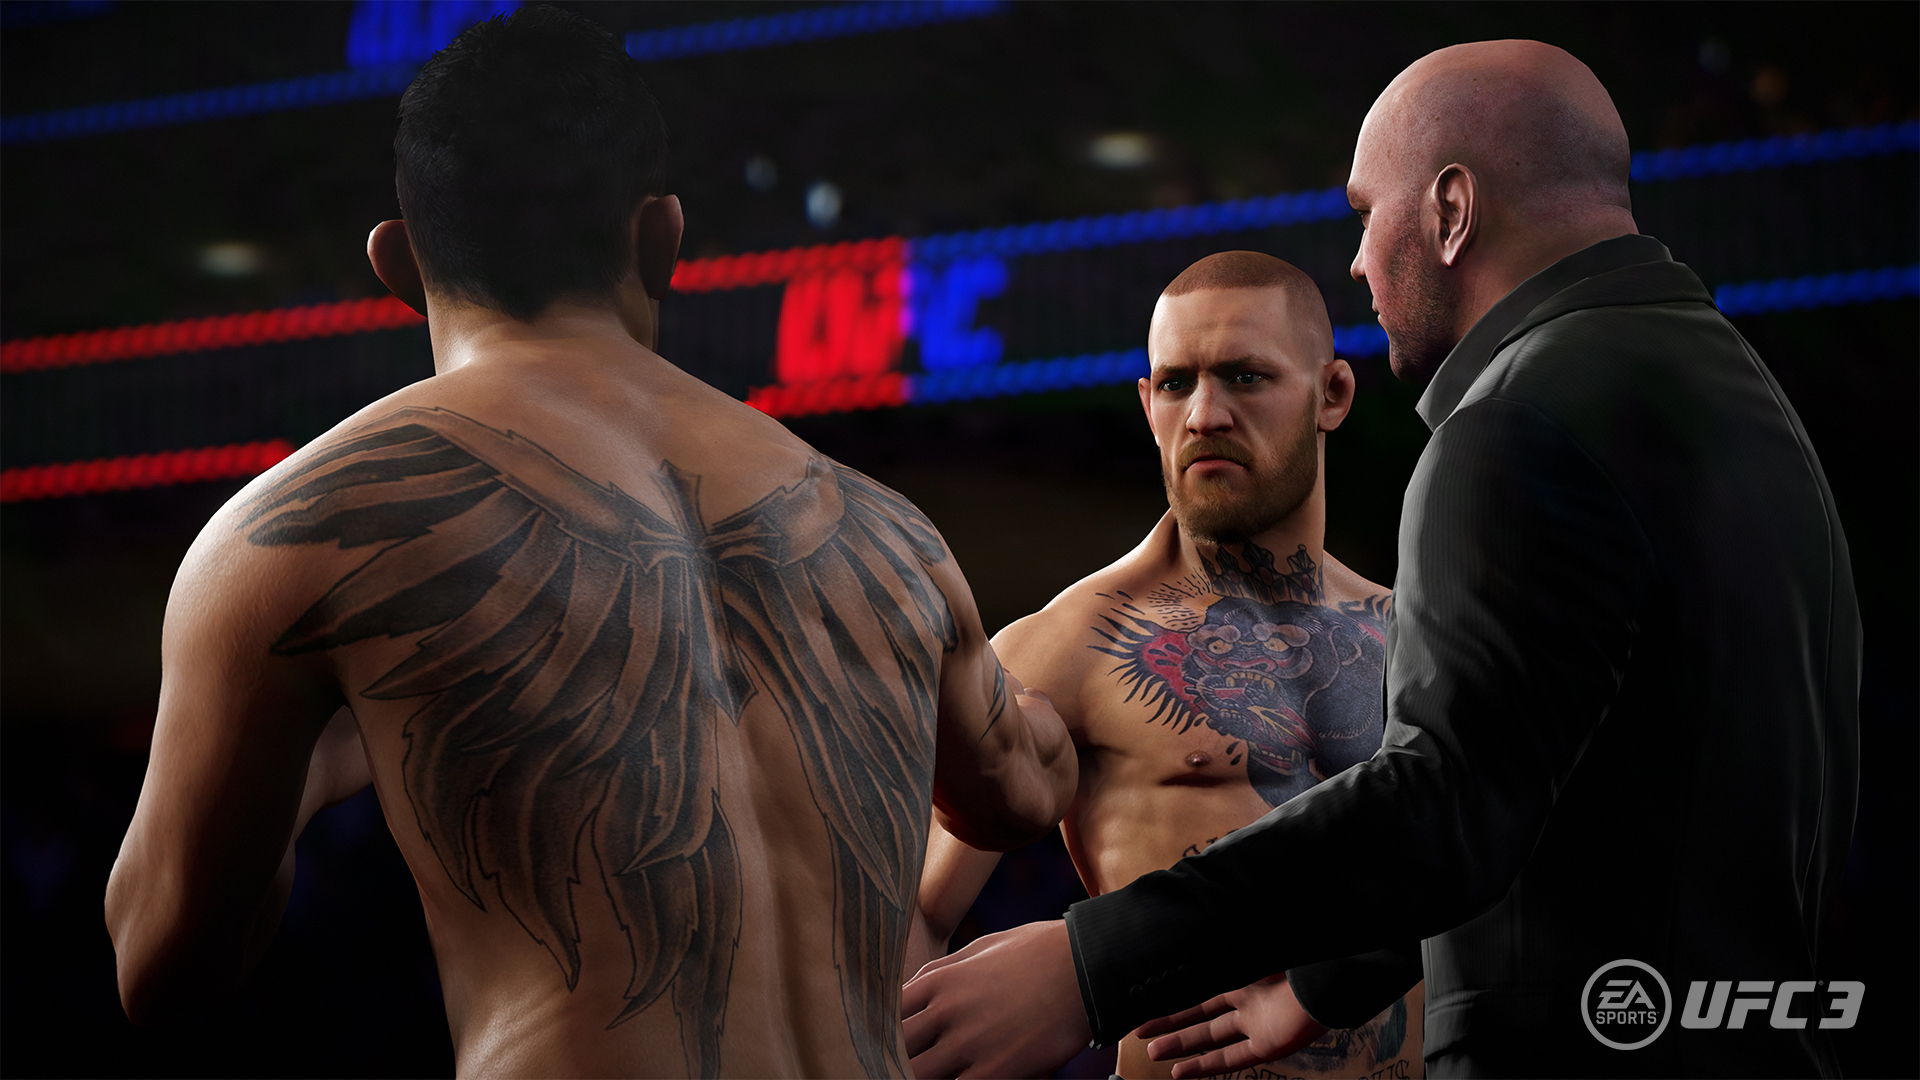 Ea Sports Ufc 3 Announced For Xbox One Ps4 Update Polygon Sony 2 Vancouver Electronic Arts